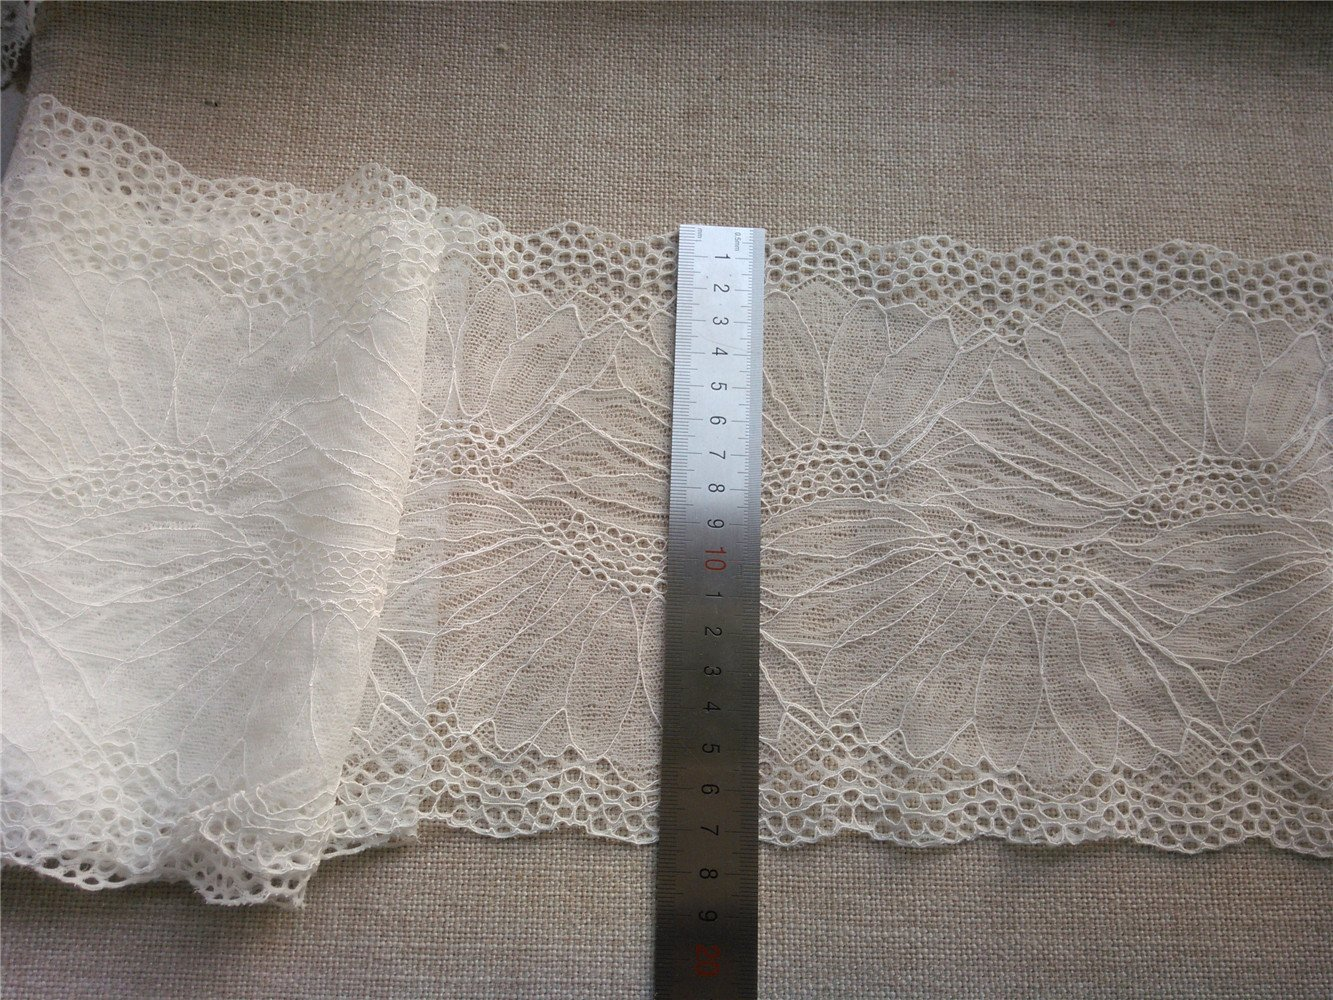 Stretch lace trim,5yards white lace,garter lace trimming-LSY007